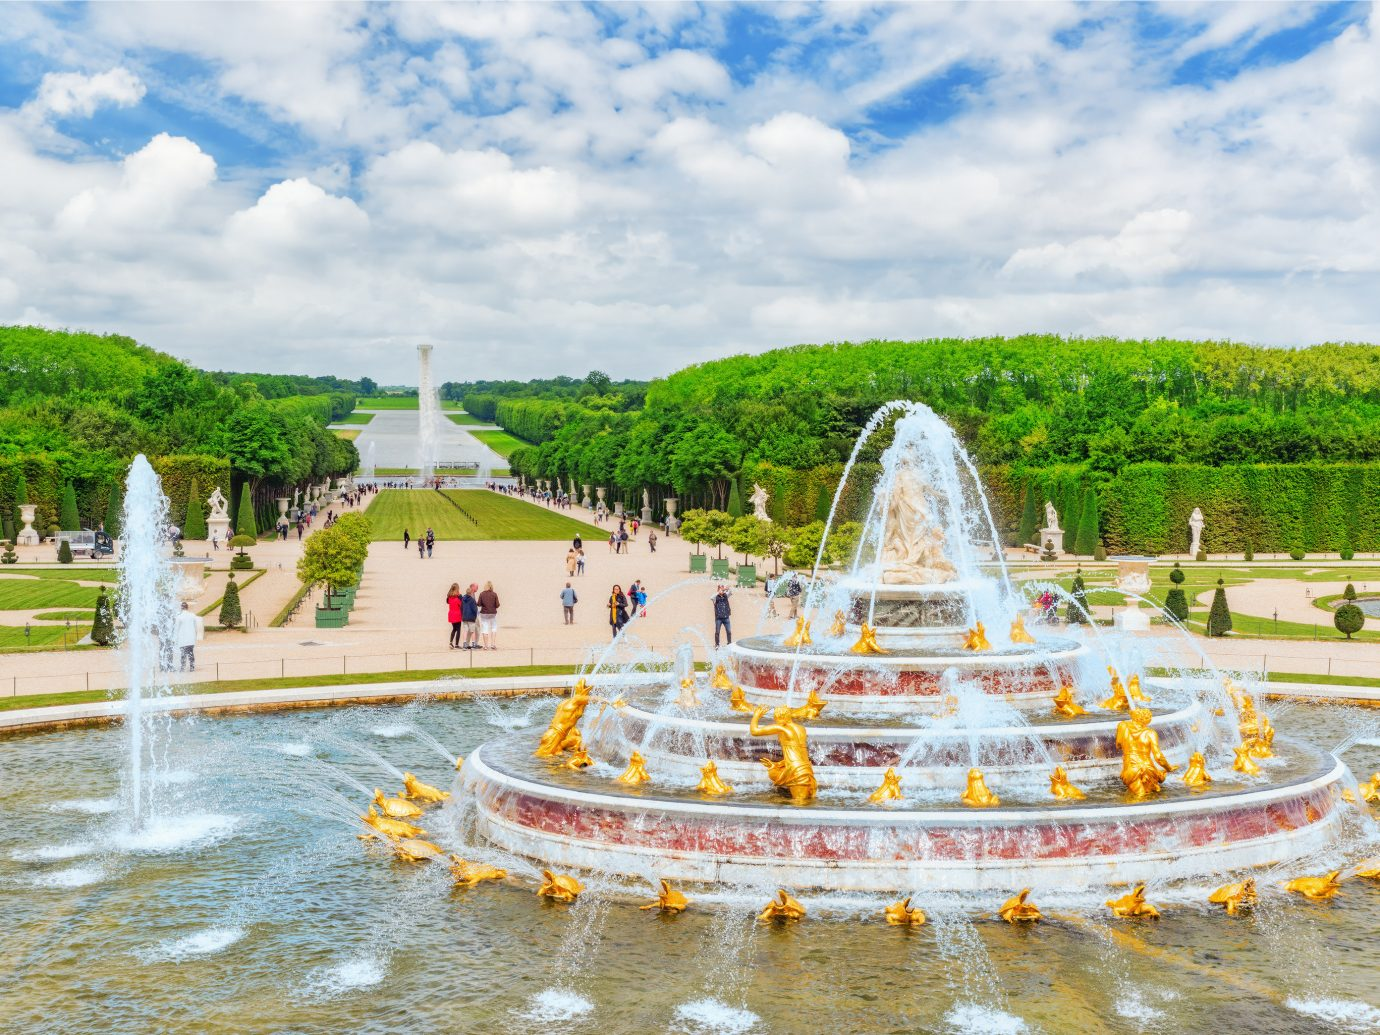 Romance Trip Ideas sky outdoor landmark amusement park fountain park outdoor recreation tourism water feature palace recreation Water park town square